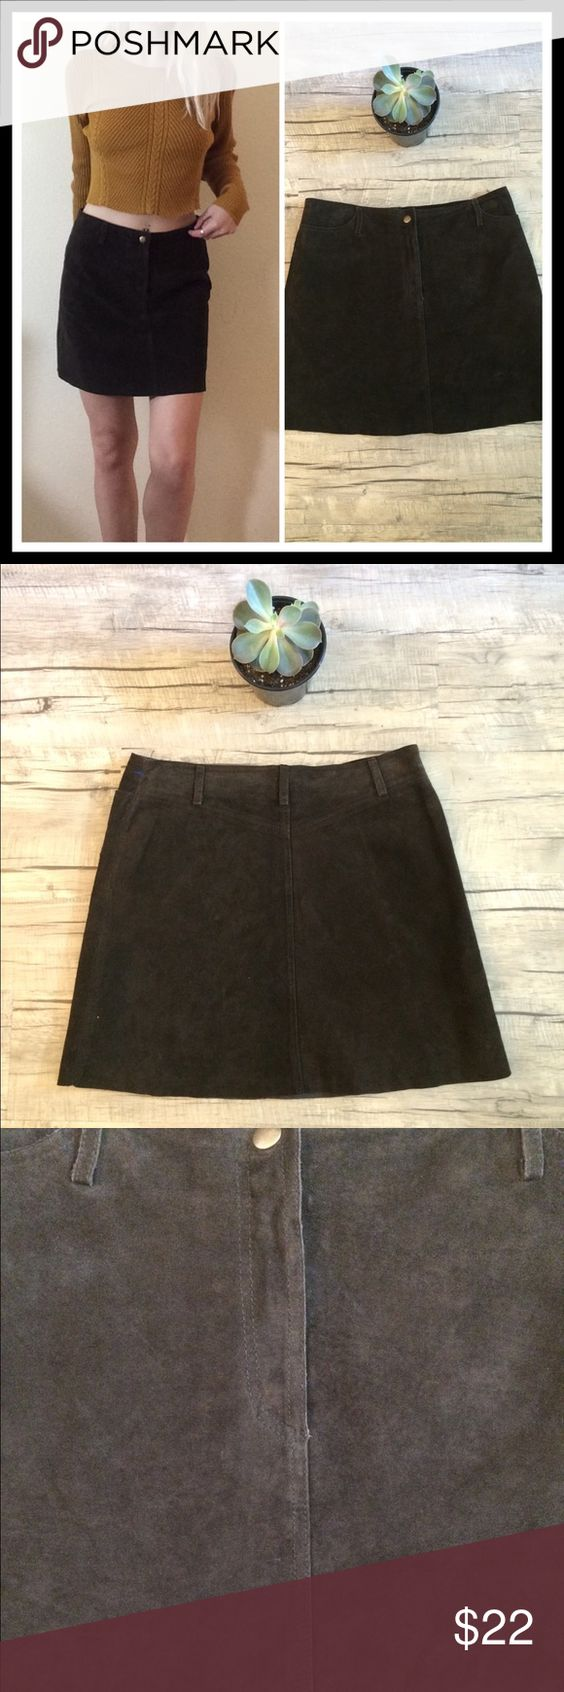 "90's Vintage 🍁Dark Chocolate Swede Mini Skirt🍁 +Measurements+  Waist-30""  Length- 16""  +Details+  Model is 5' 5"" and is a size XS - fits slightly too big on model and skirt is being held up at waist to give an idea on how it should fit- Real leather- Pockets!!! That work!!- snap button closure- has belt loops- ✨NOT LF✨🐰NO TRADES🐰 #90s #grunge #idleskin #distressed #vintage #graphic #band #metal #punk #edgy #fall #leather #chocolate #dark #witchy LF Skirts Mini"